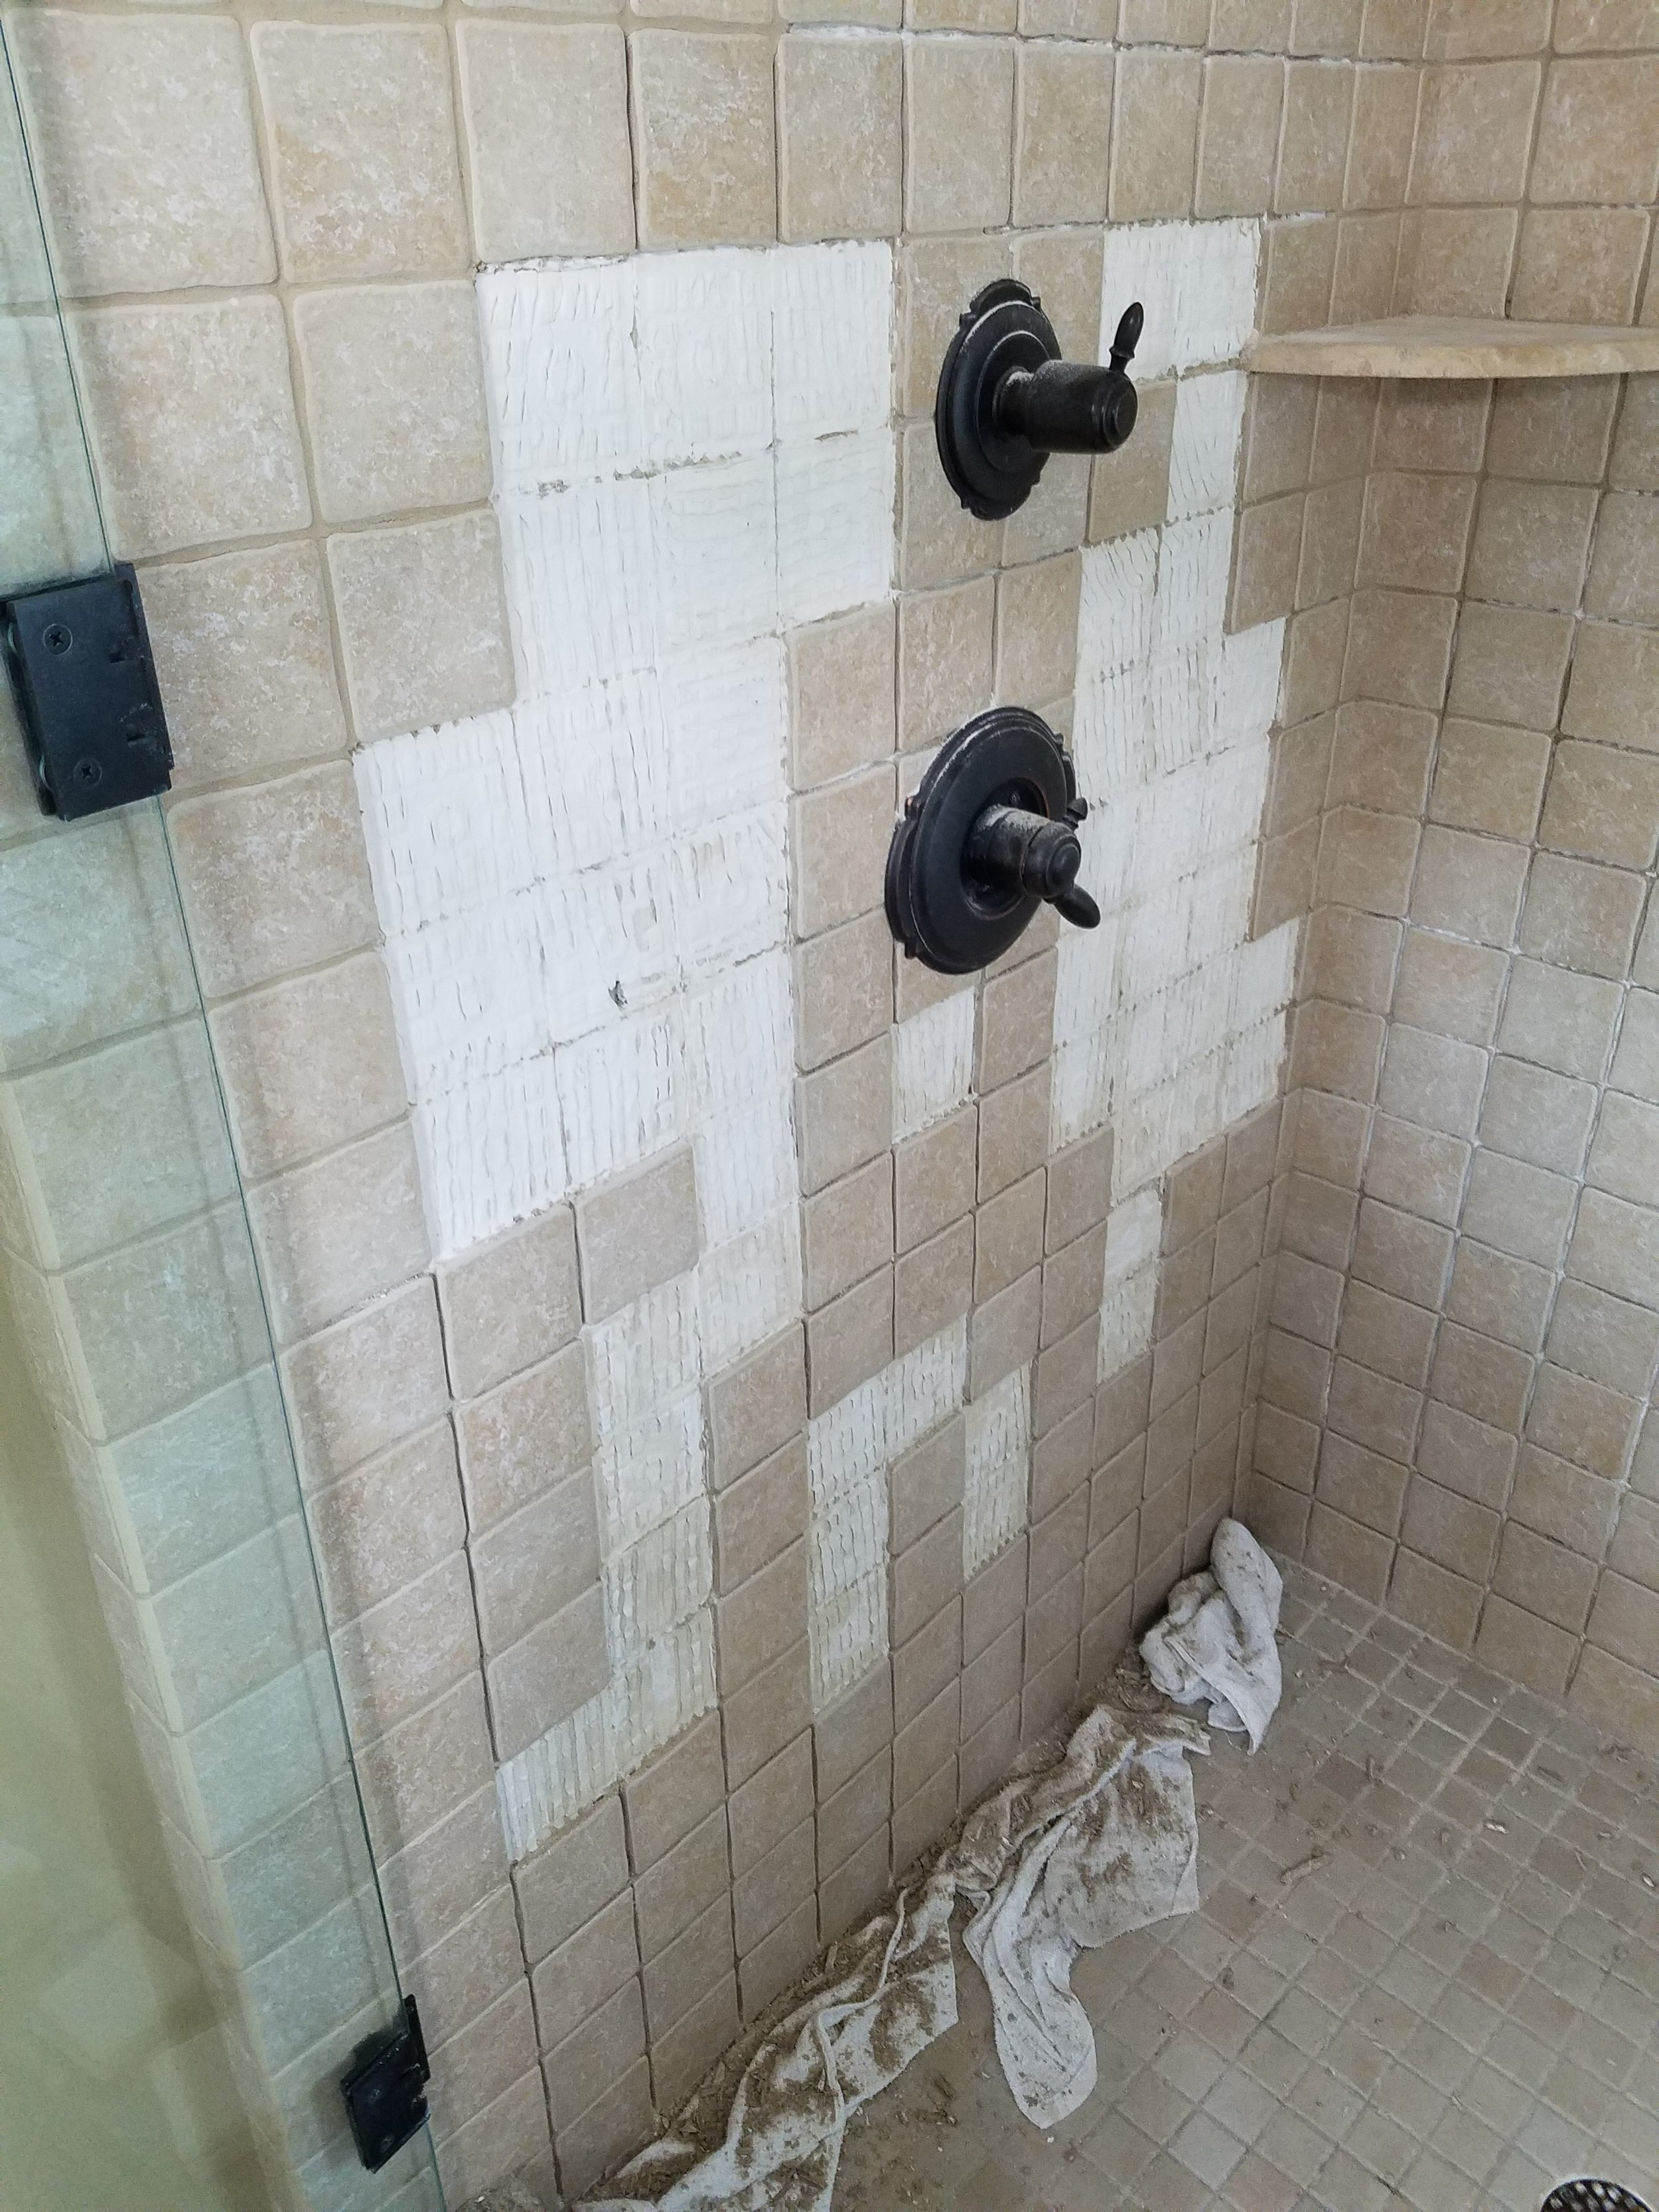 Loose tiles have come off during a regrout.